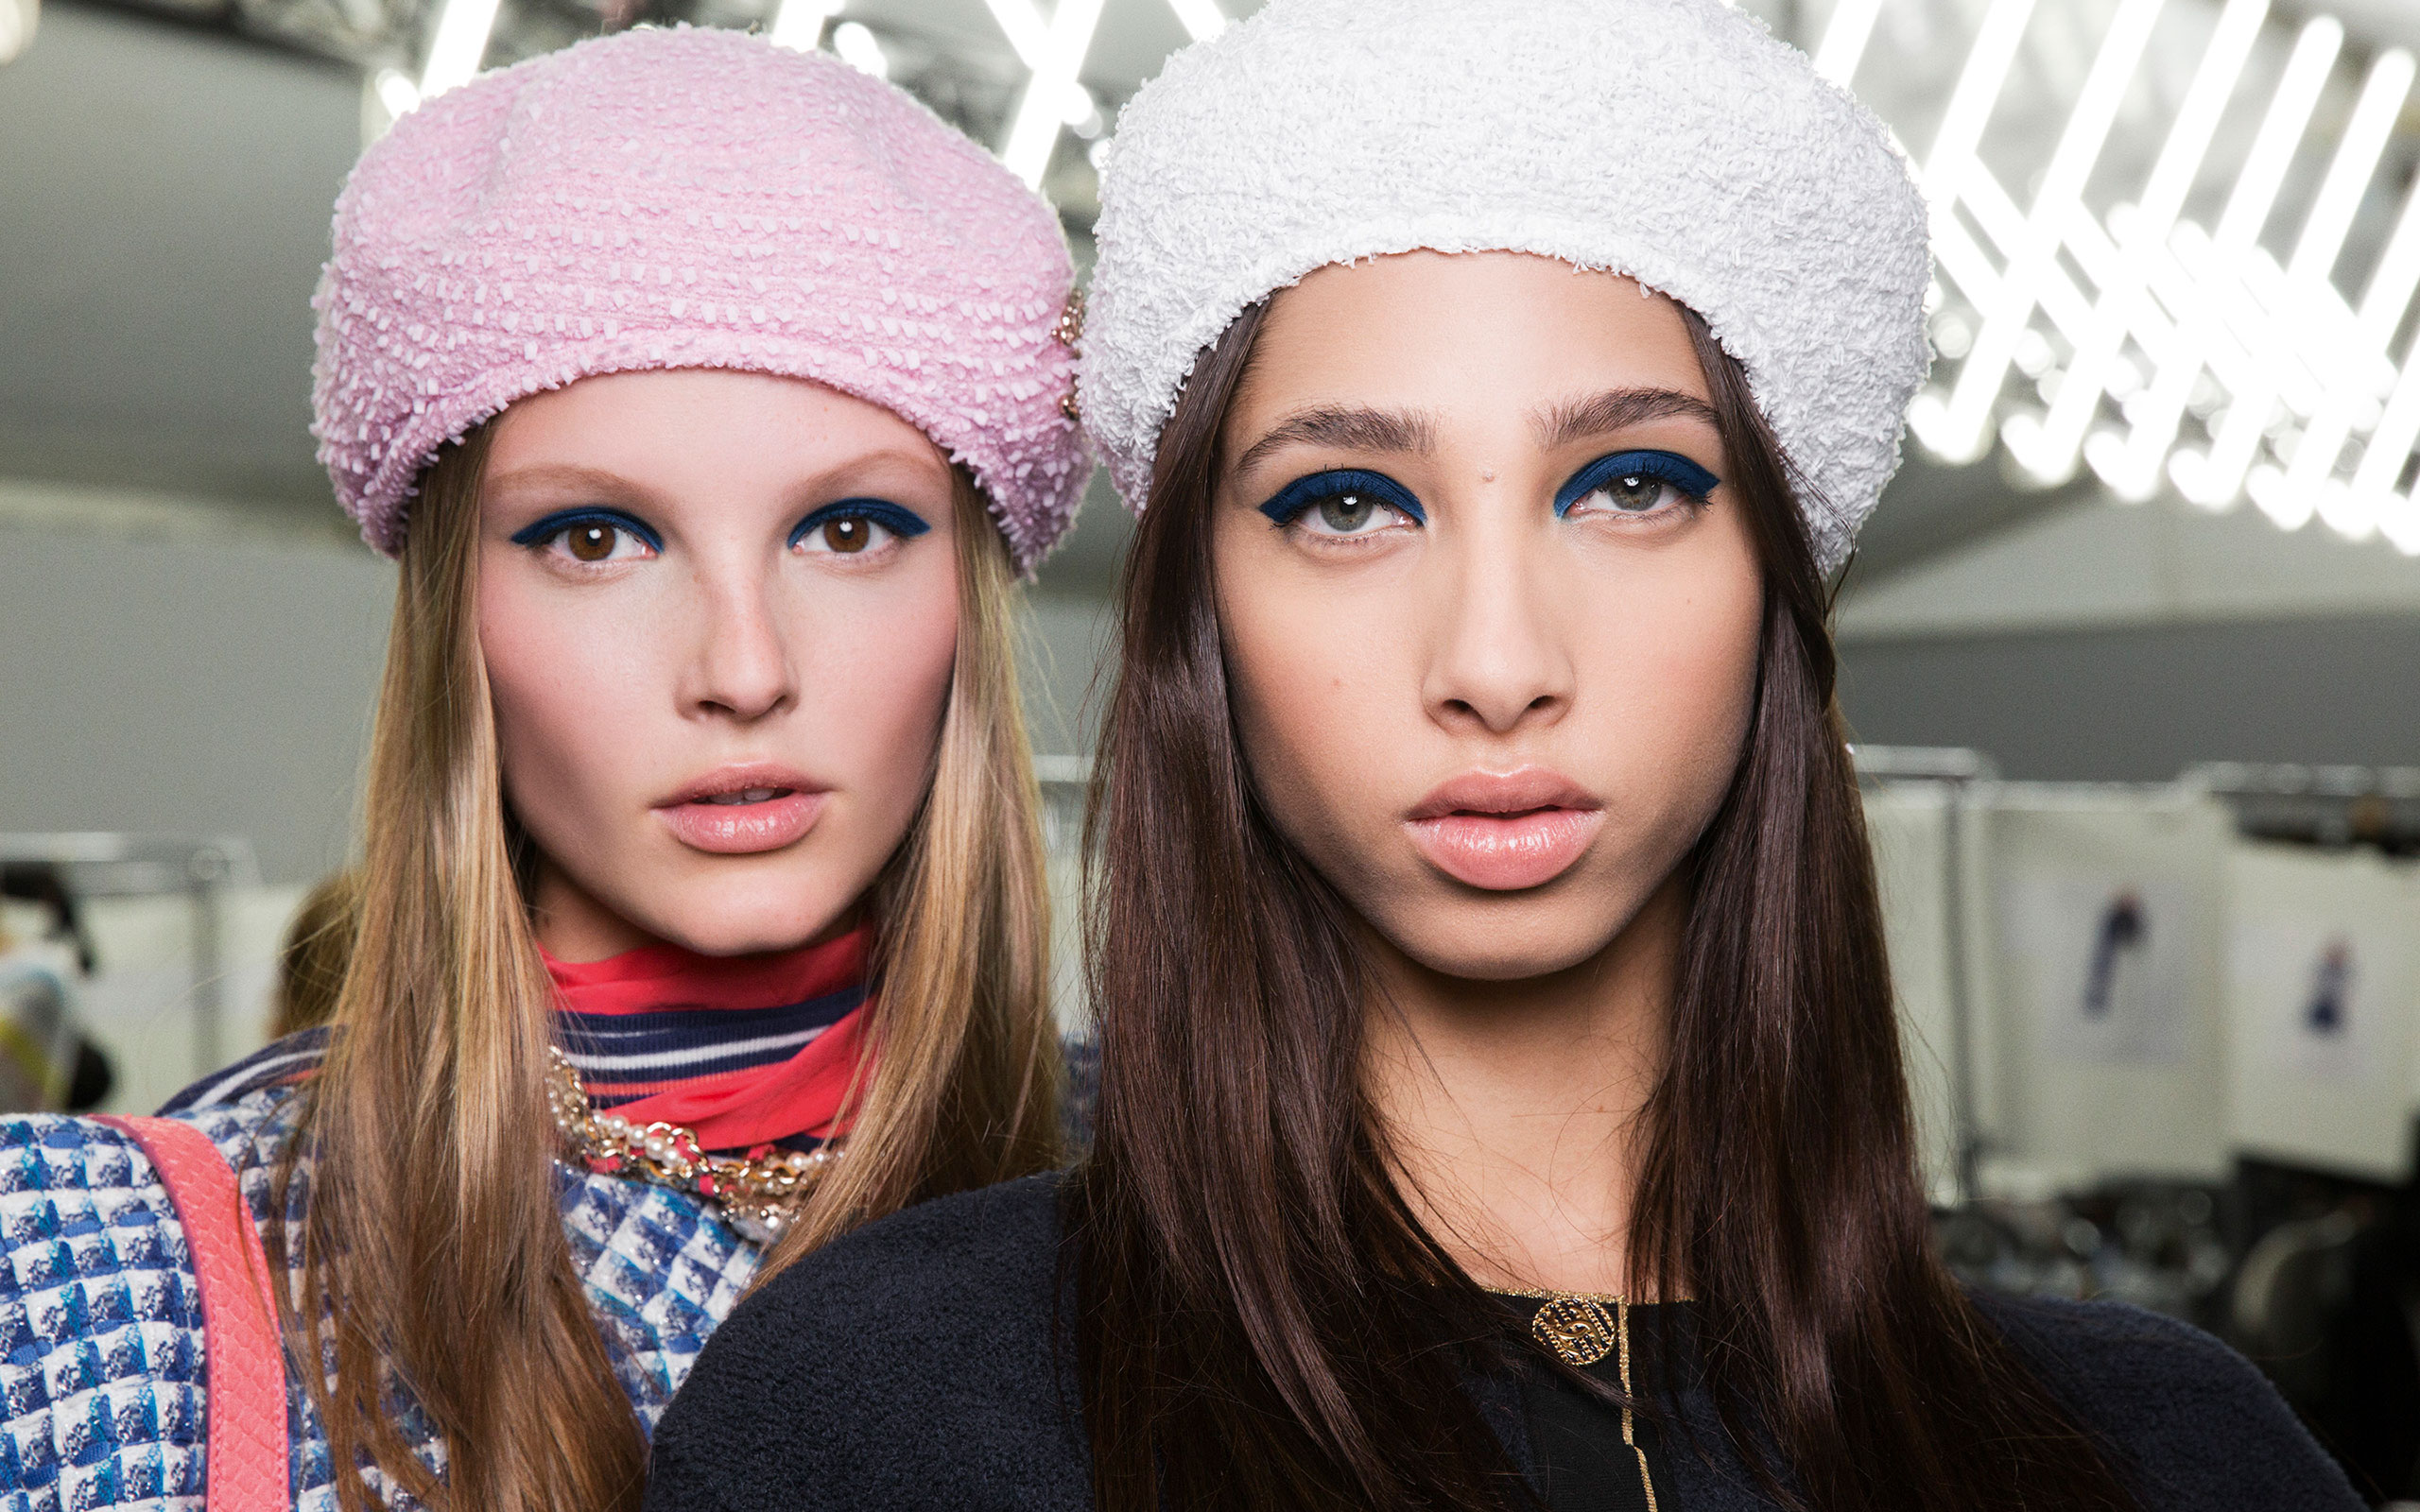 Chanel's Cruise 2018-19 Collection Make-Up By Lucia Pica